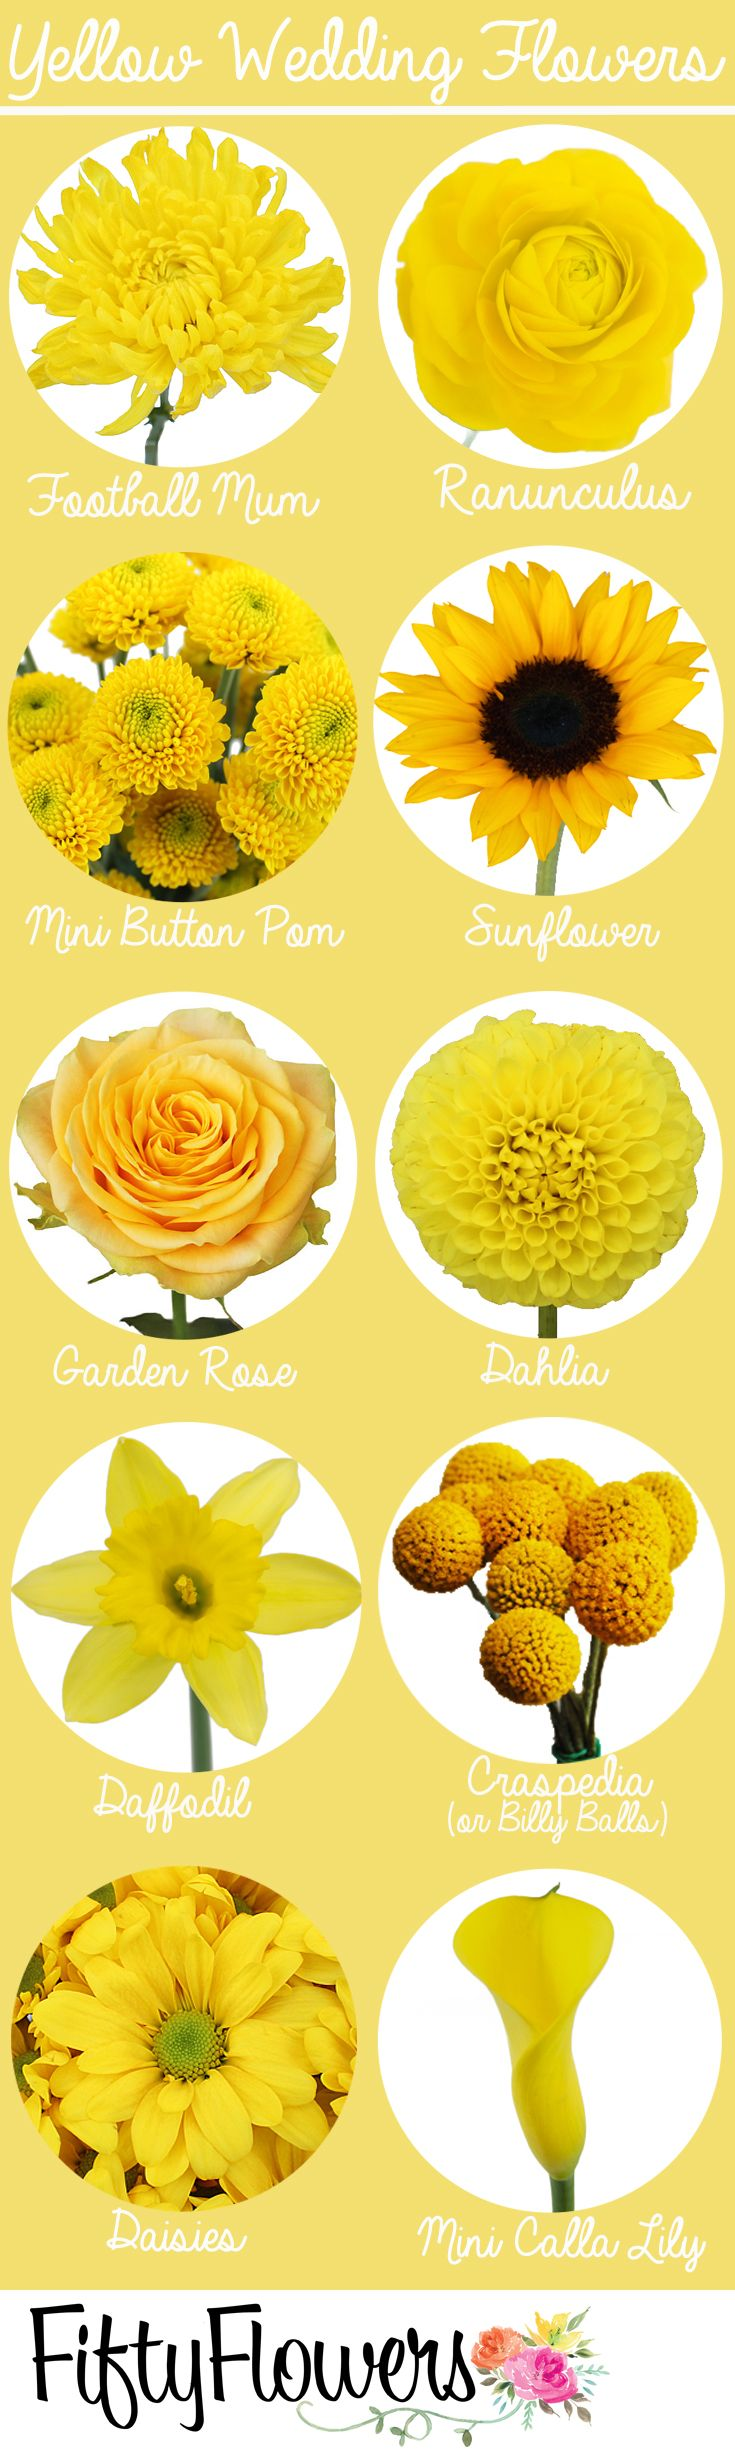 Find Your Sunny Yellow Wedding Flowers At Fiftyflowers